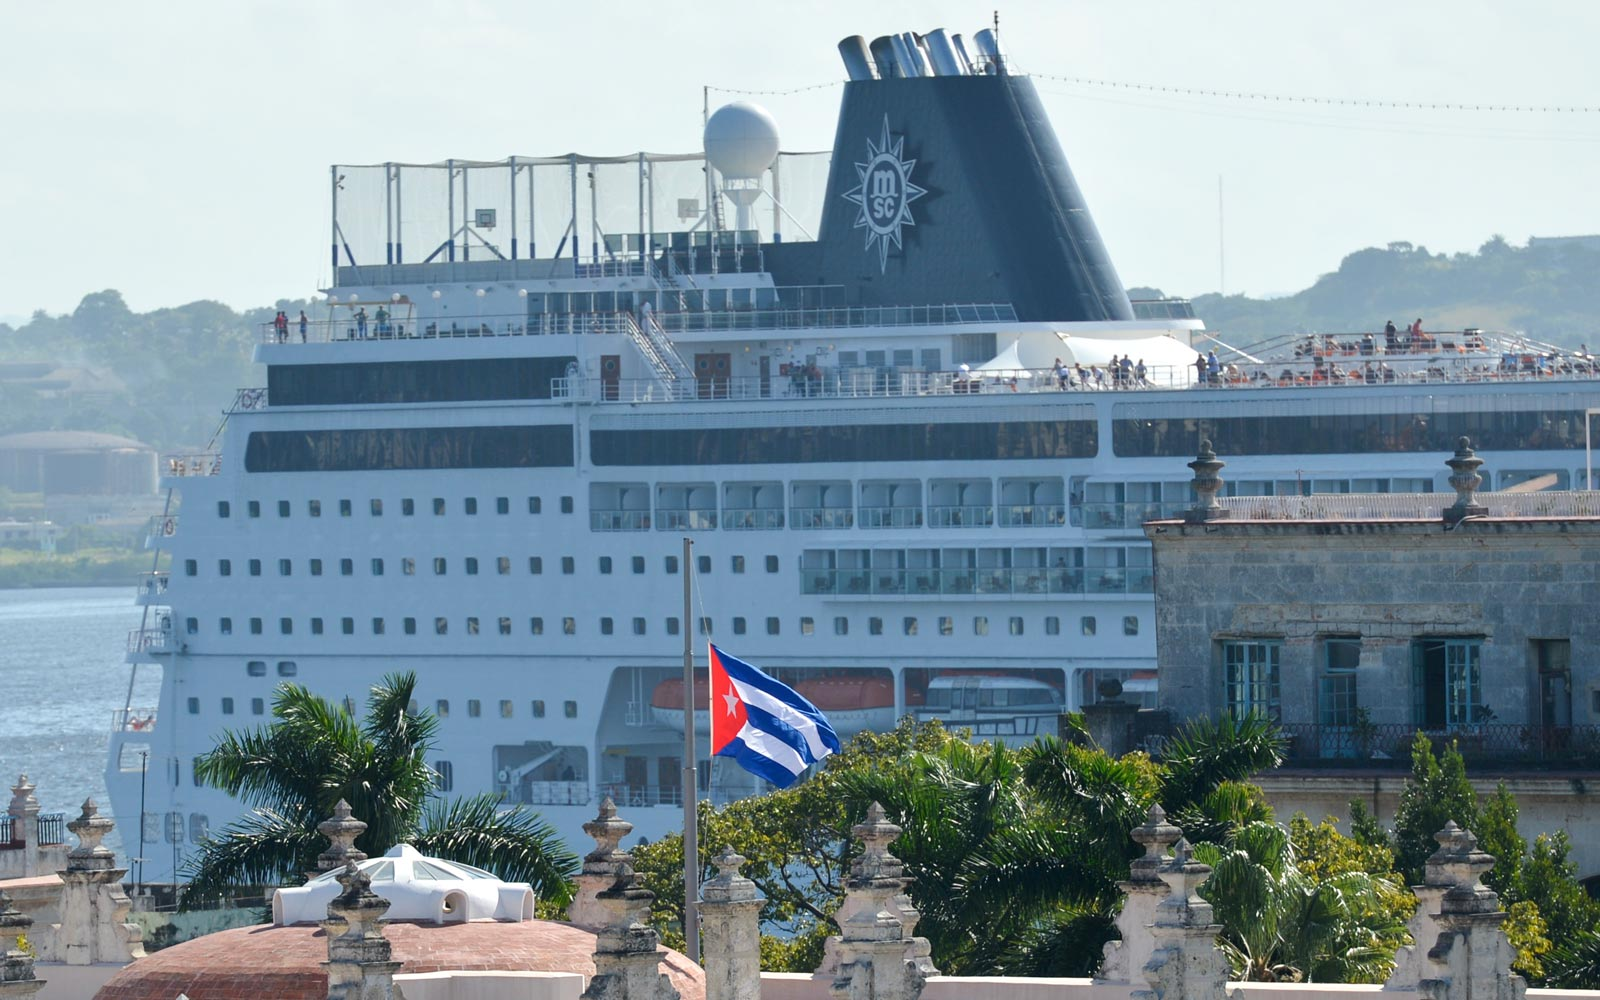 Cruise ship at port in Havana, Cuba